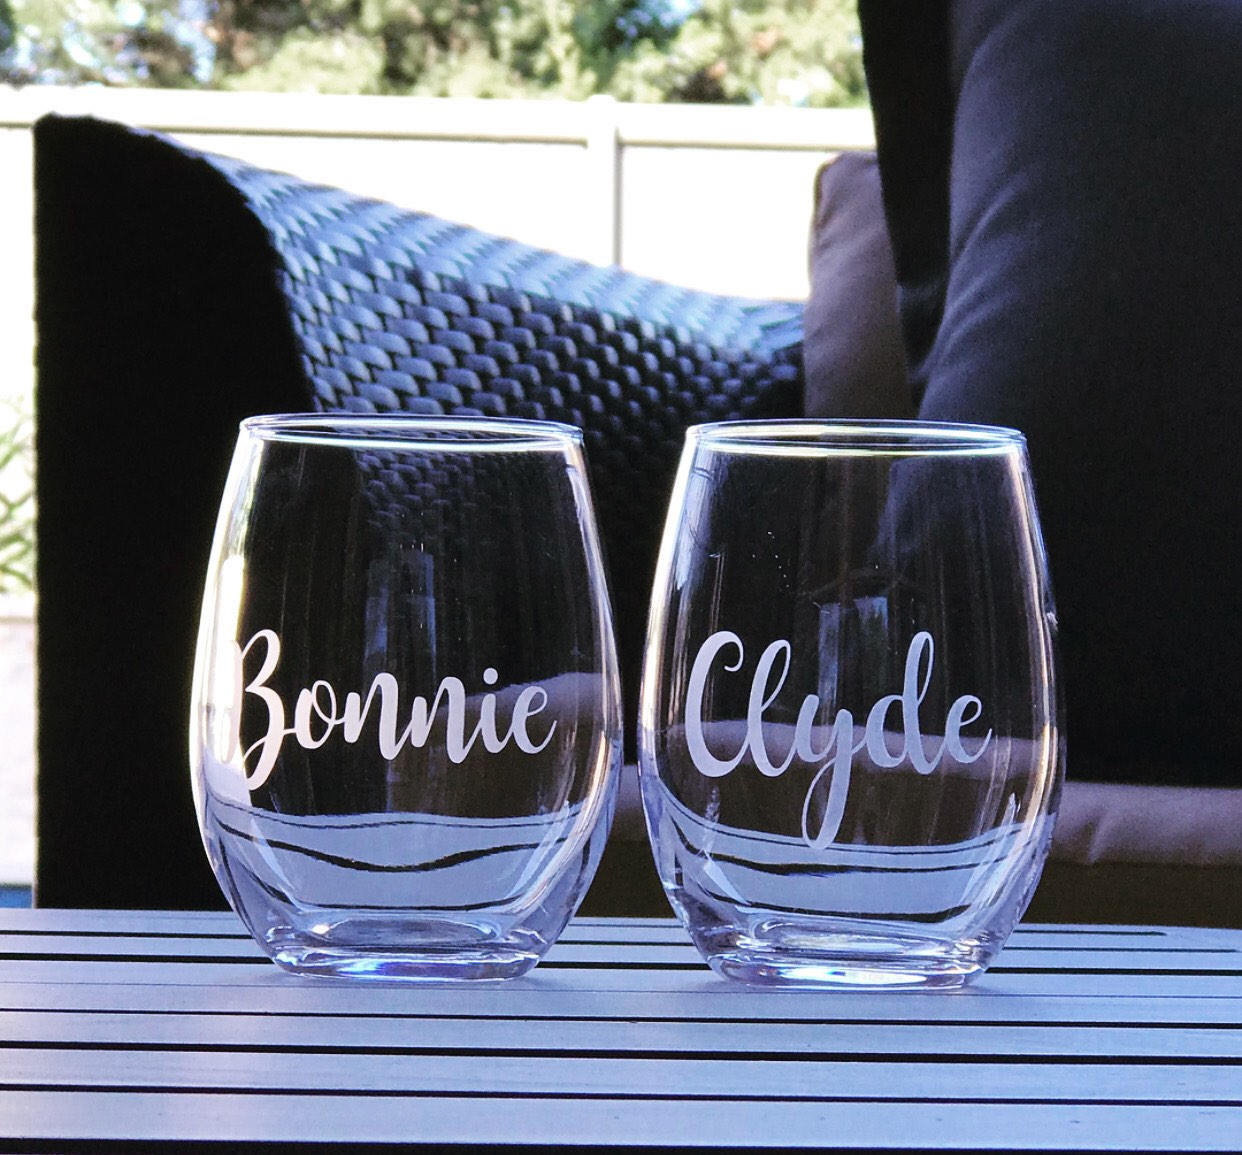 Bonnie and Clyde stemless wine glass set, best friends glasses, best friend gift, partner in crime, ride or die gift, funny partner gift